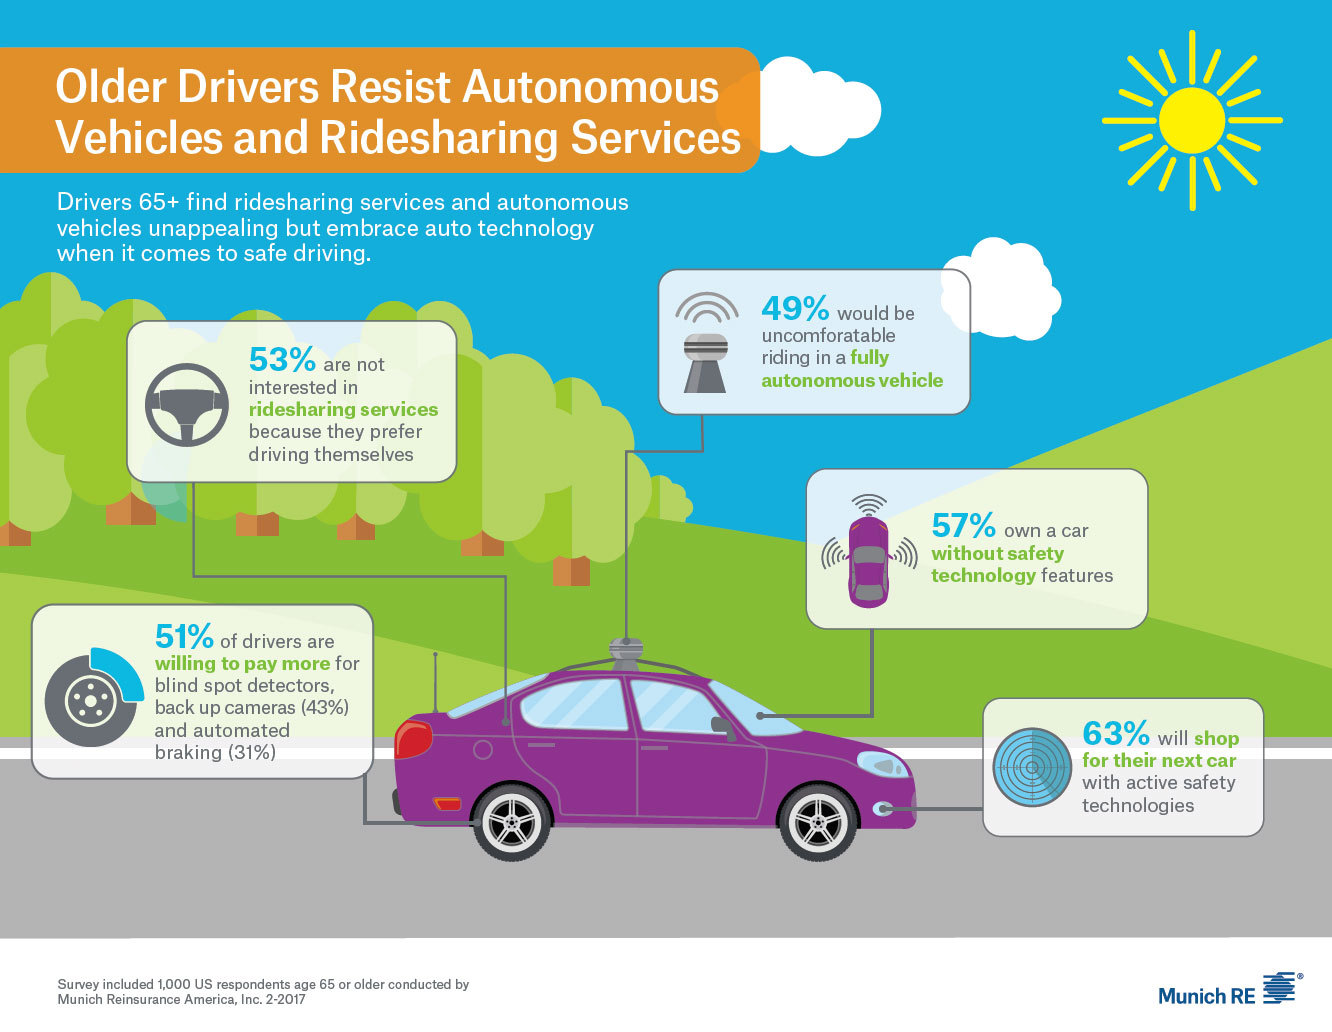 Munich Re Infographic: Older Drivers Resist Autonomous Vehicles and Ridesharing Services (Graphic: Business Wire)